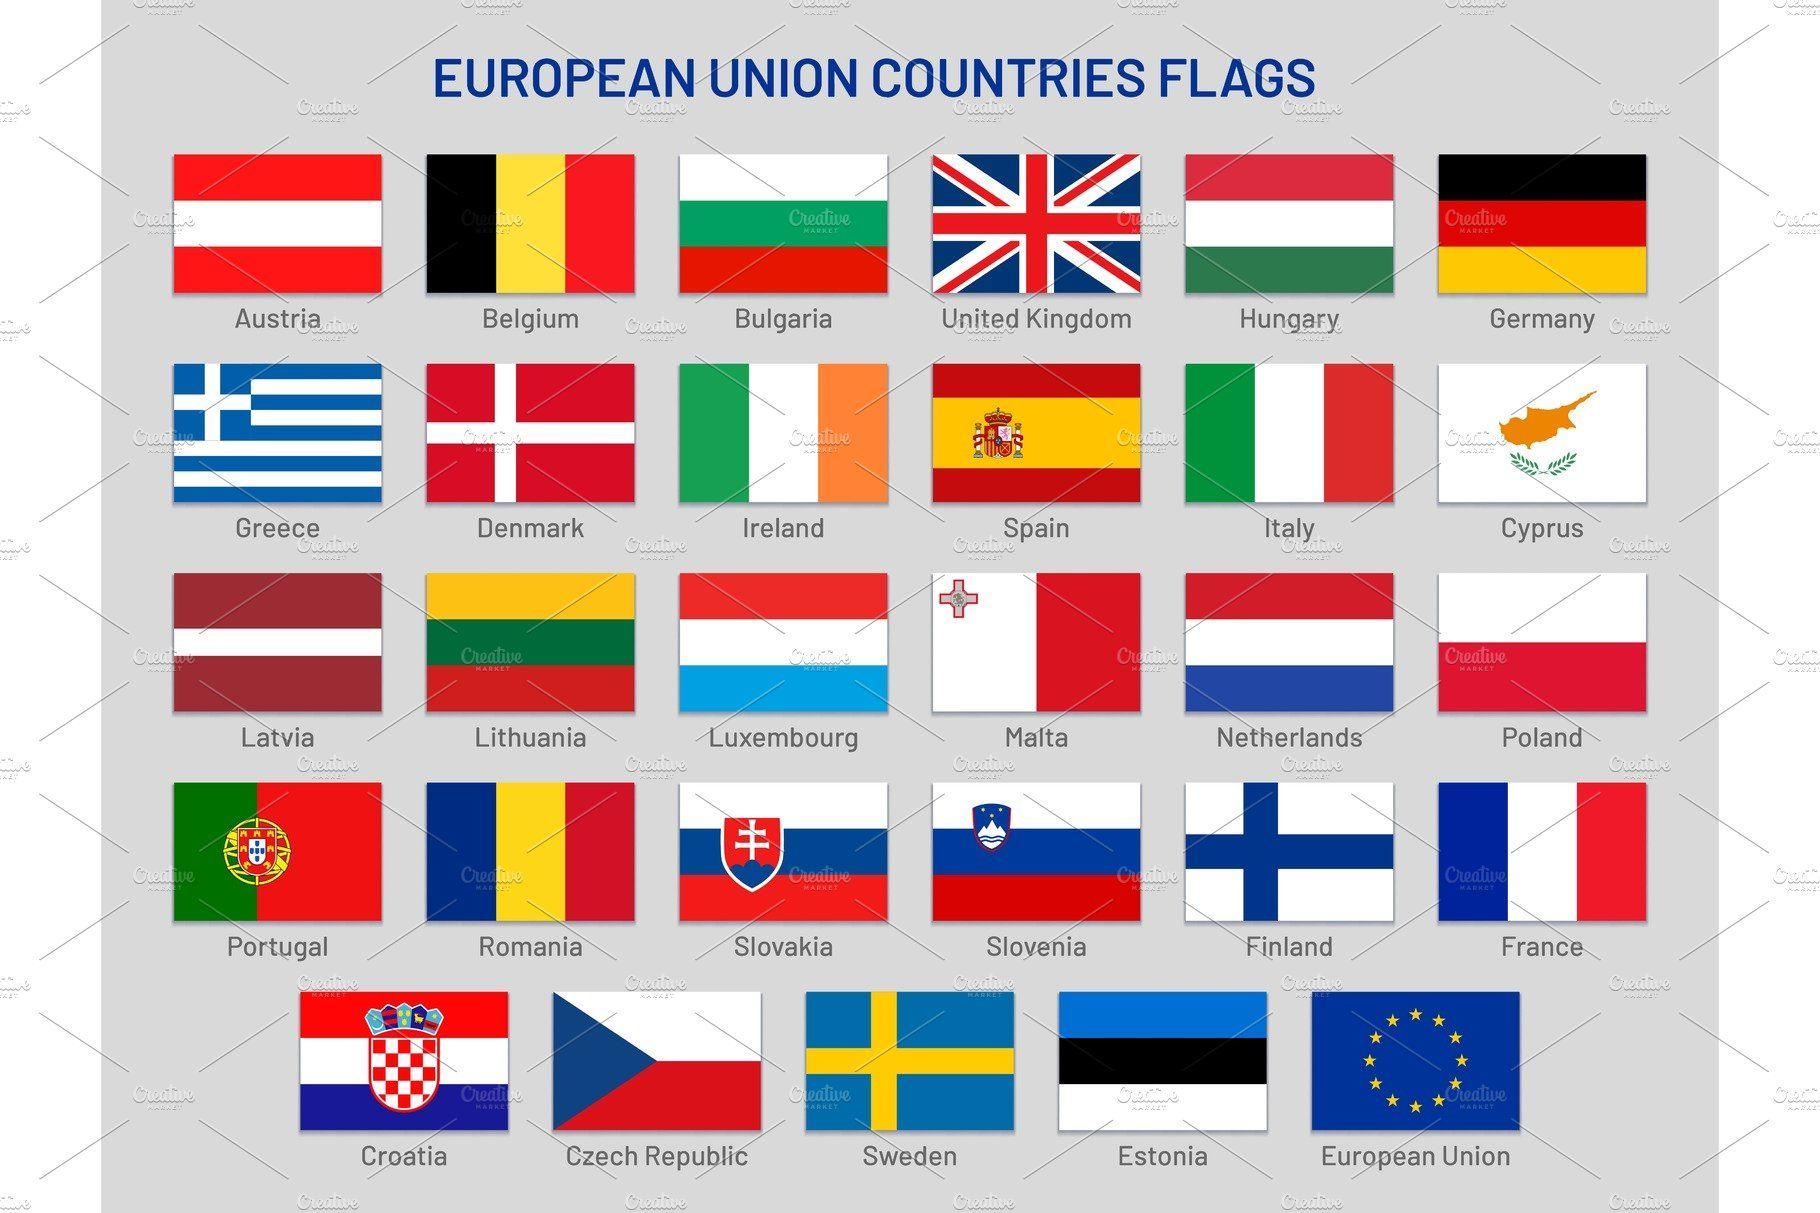 European Union Countries Flags Countries And Flags European Flags World Country Flags